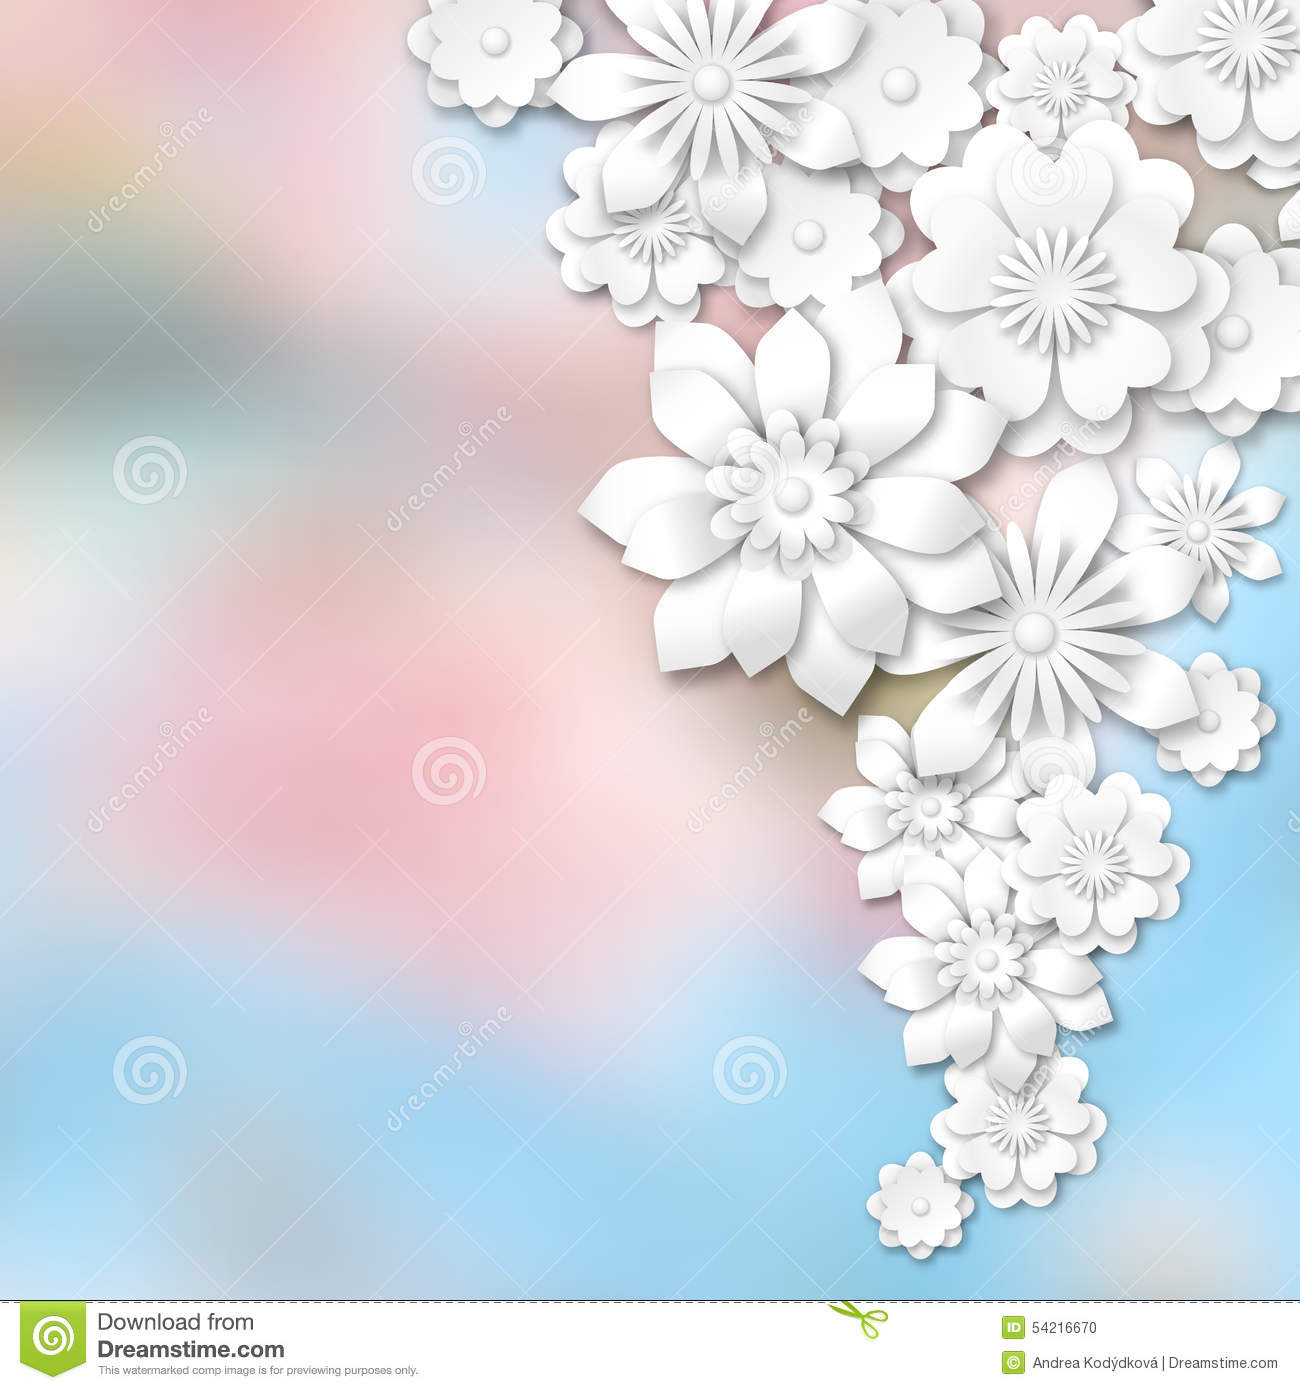 White 3d flowers on abstract blurred background stock for 3d white flower wallpaper